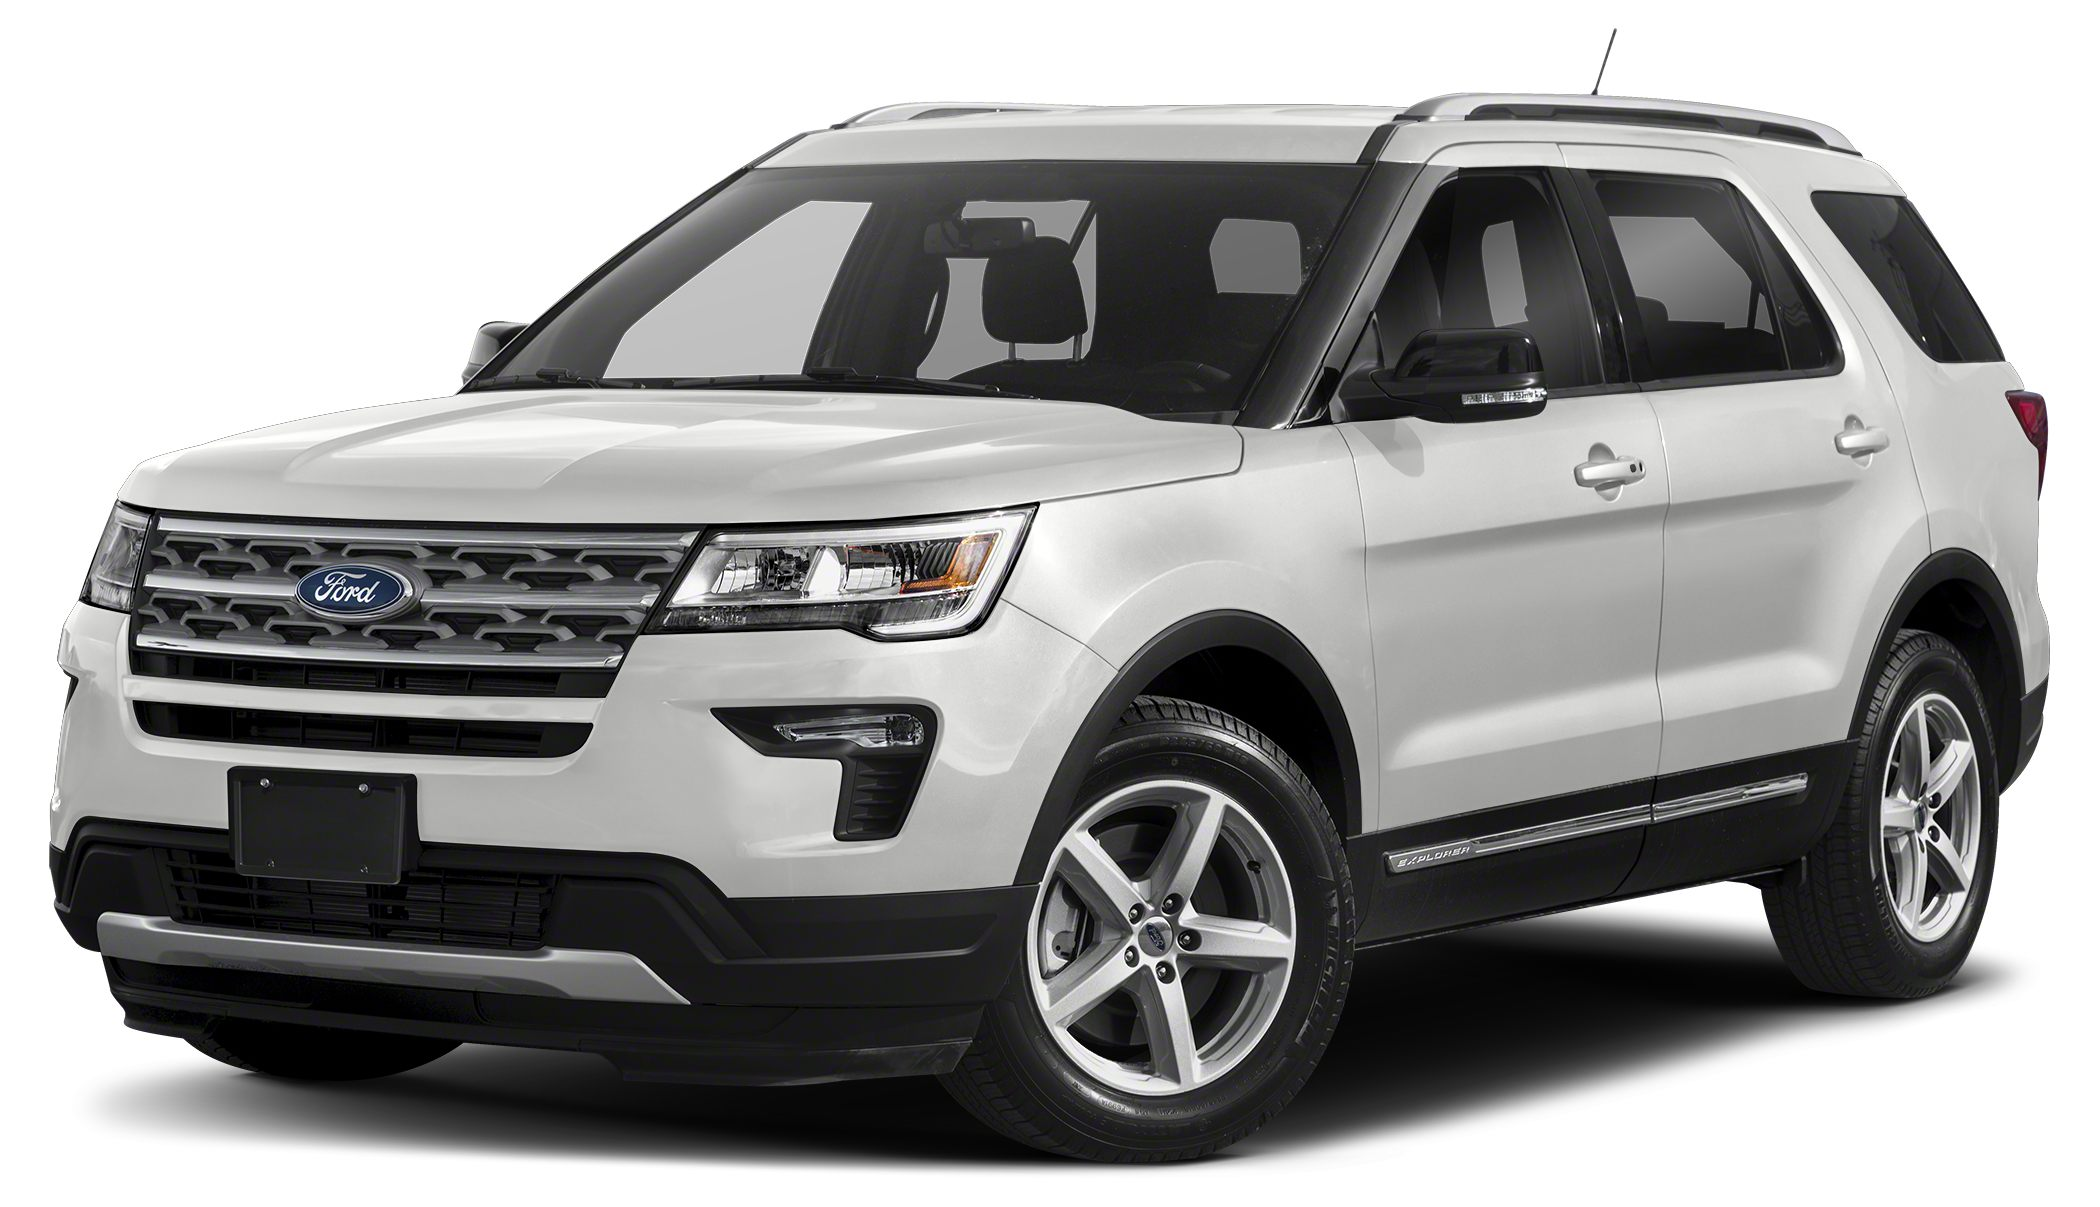 2018 Ford Explorer XLT Price includes C 1000 Owner Loyalty - Dal 2000 - Retail Customer Ca